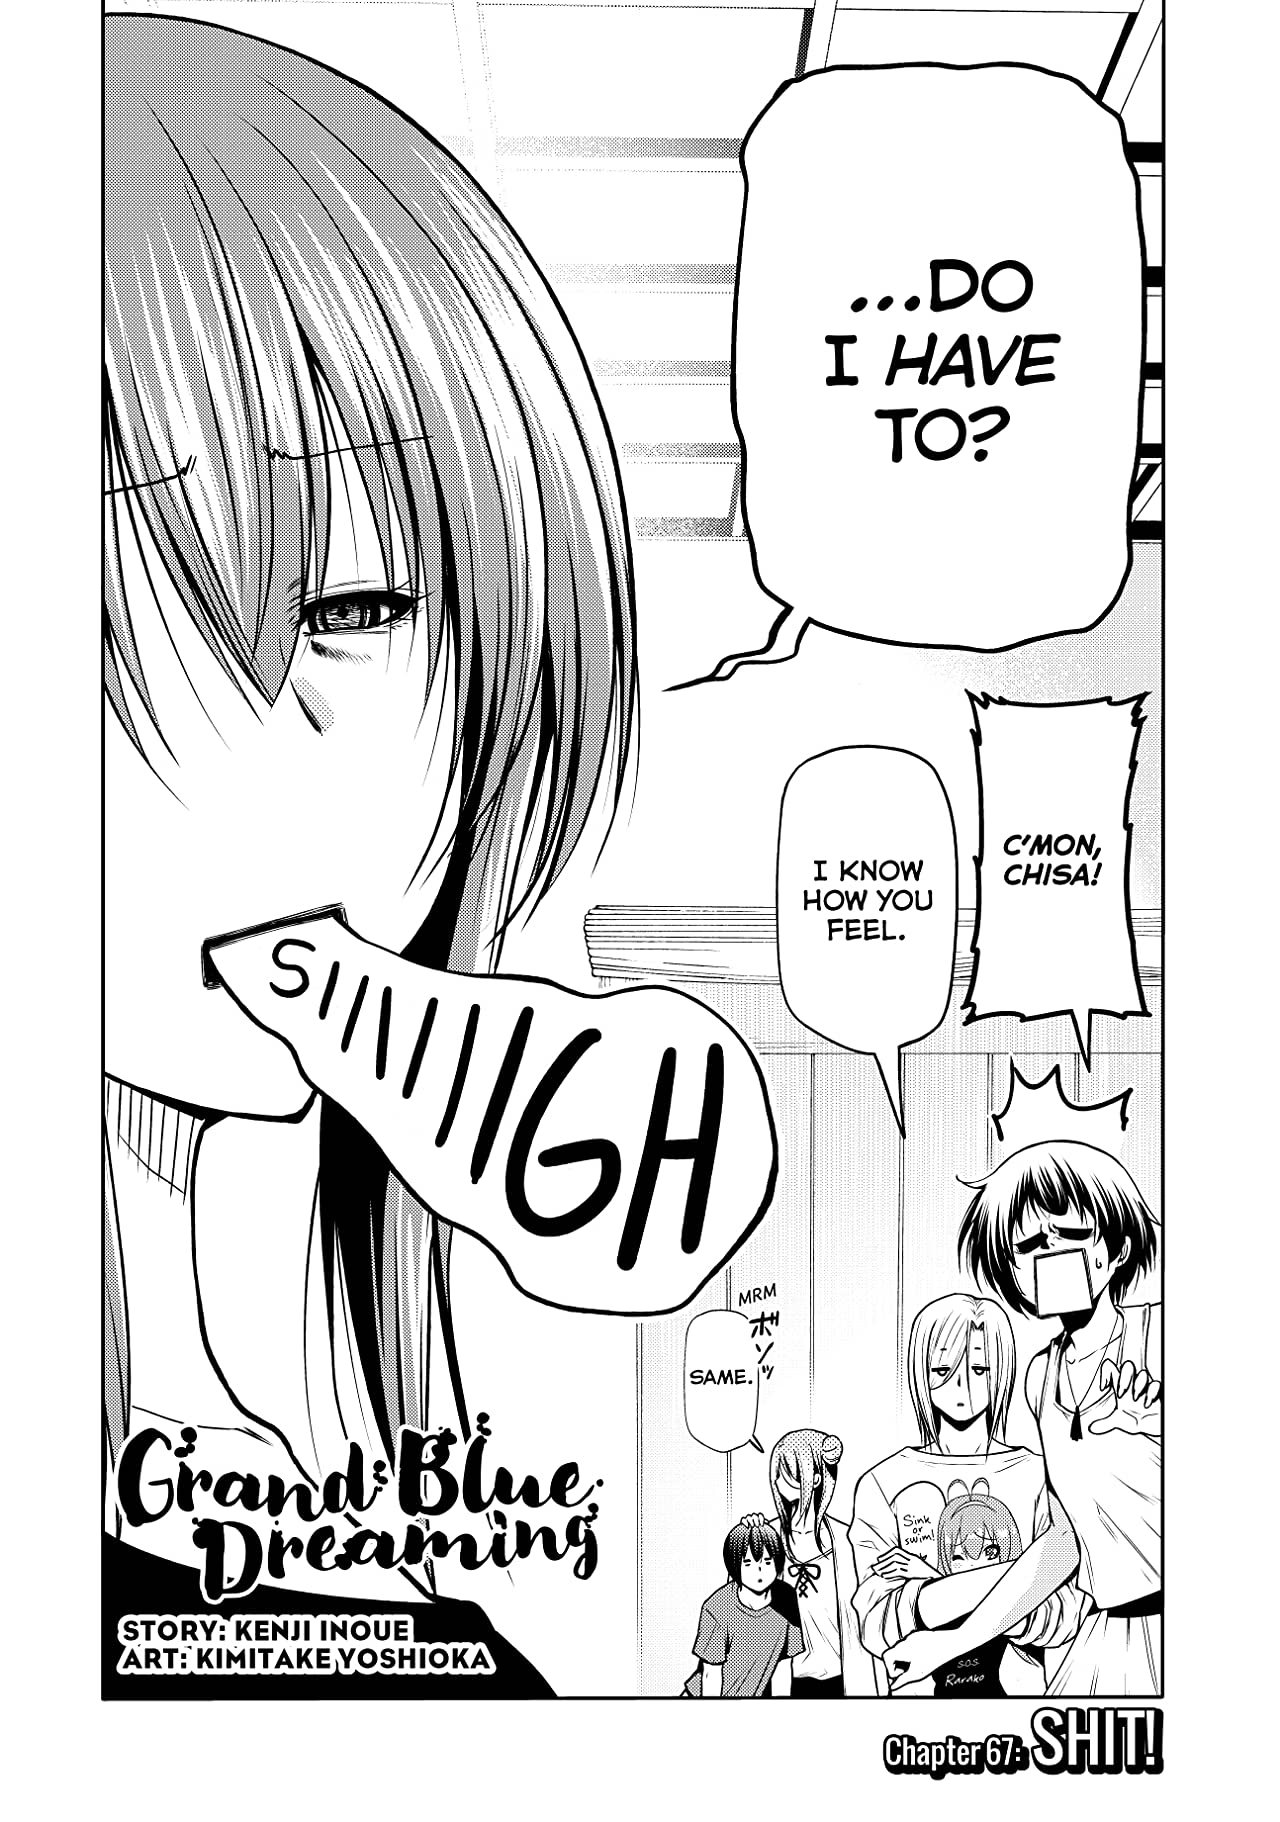 Grand Blue Dreaming No.67